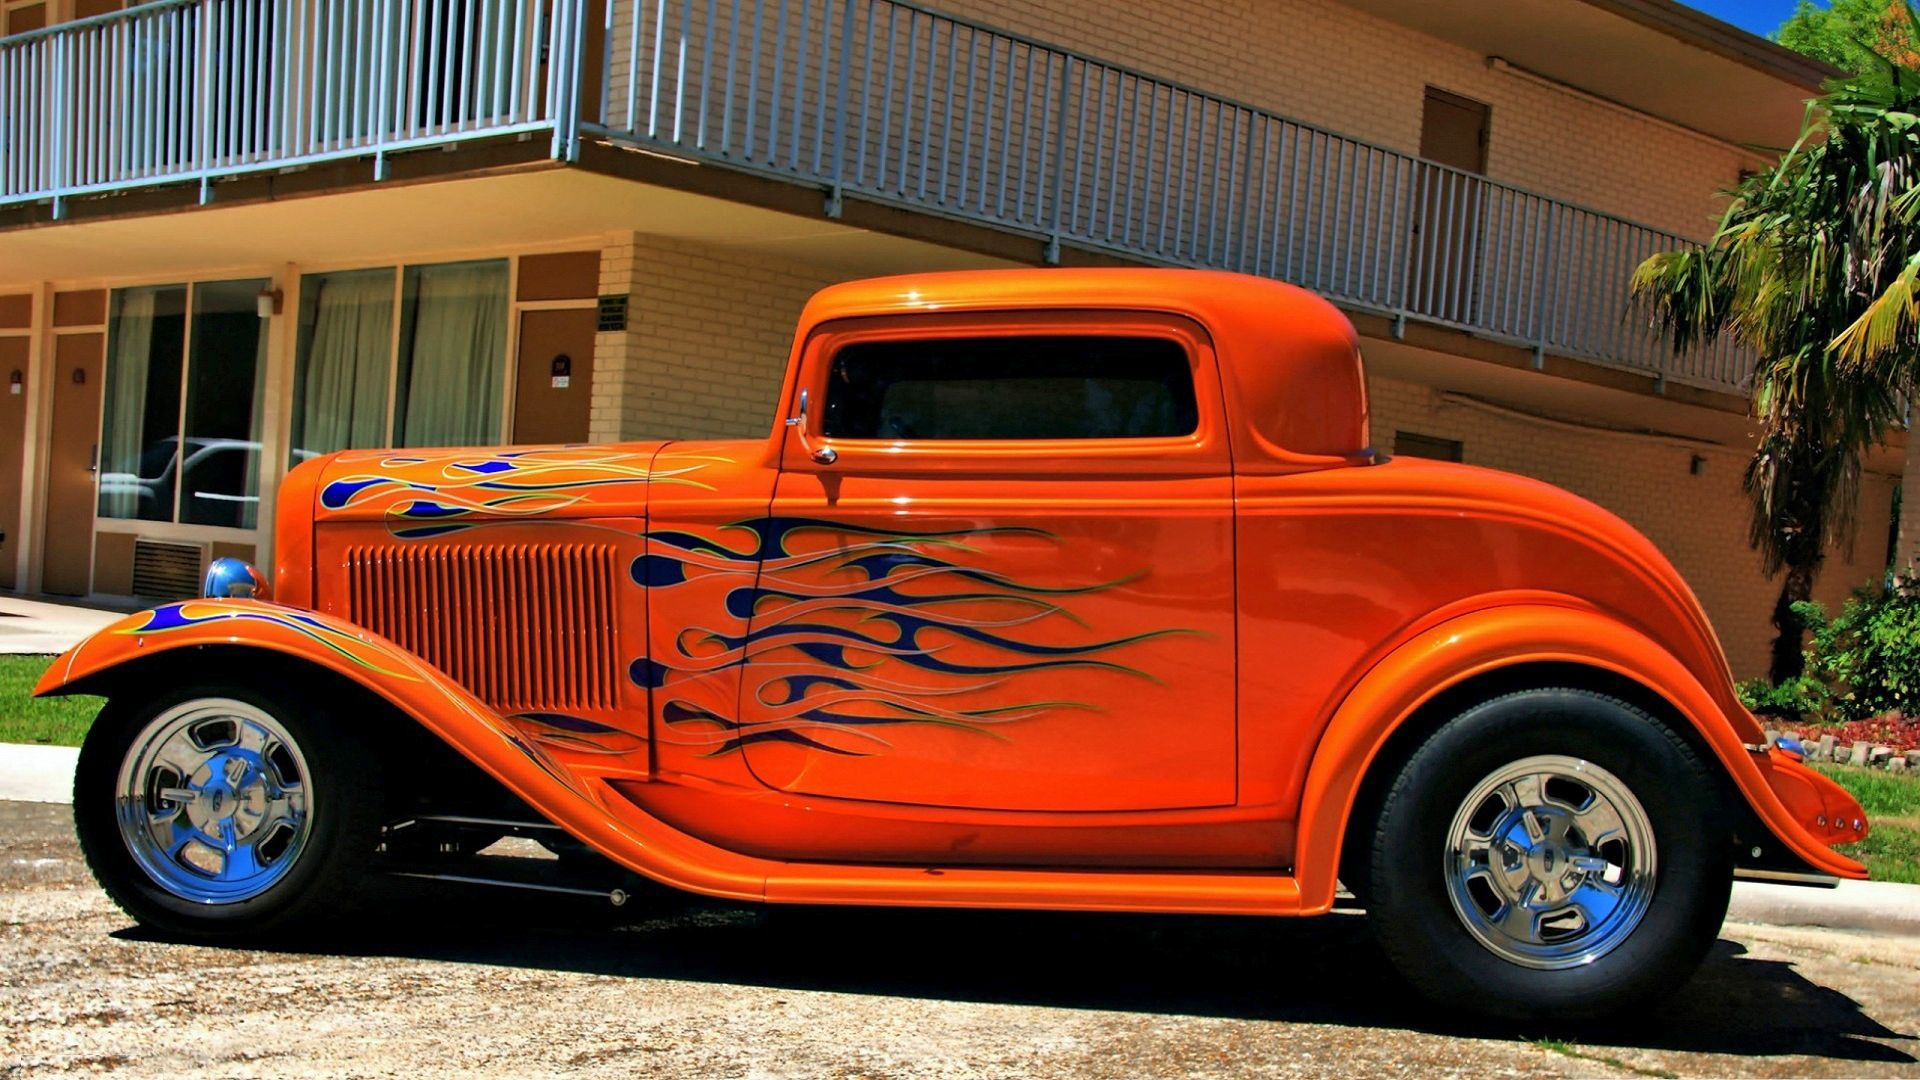 Hot Rod Flames | Hot rod car flames - Wallpapers For Free | Hot Rod ...